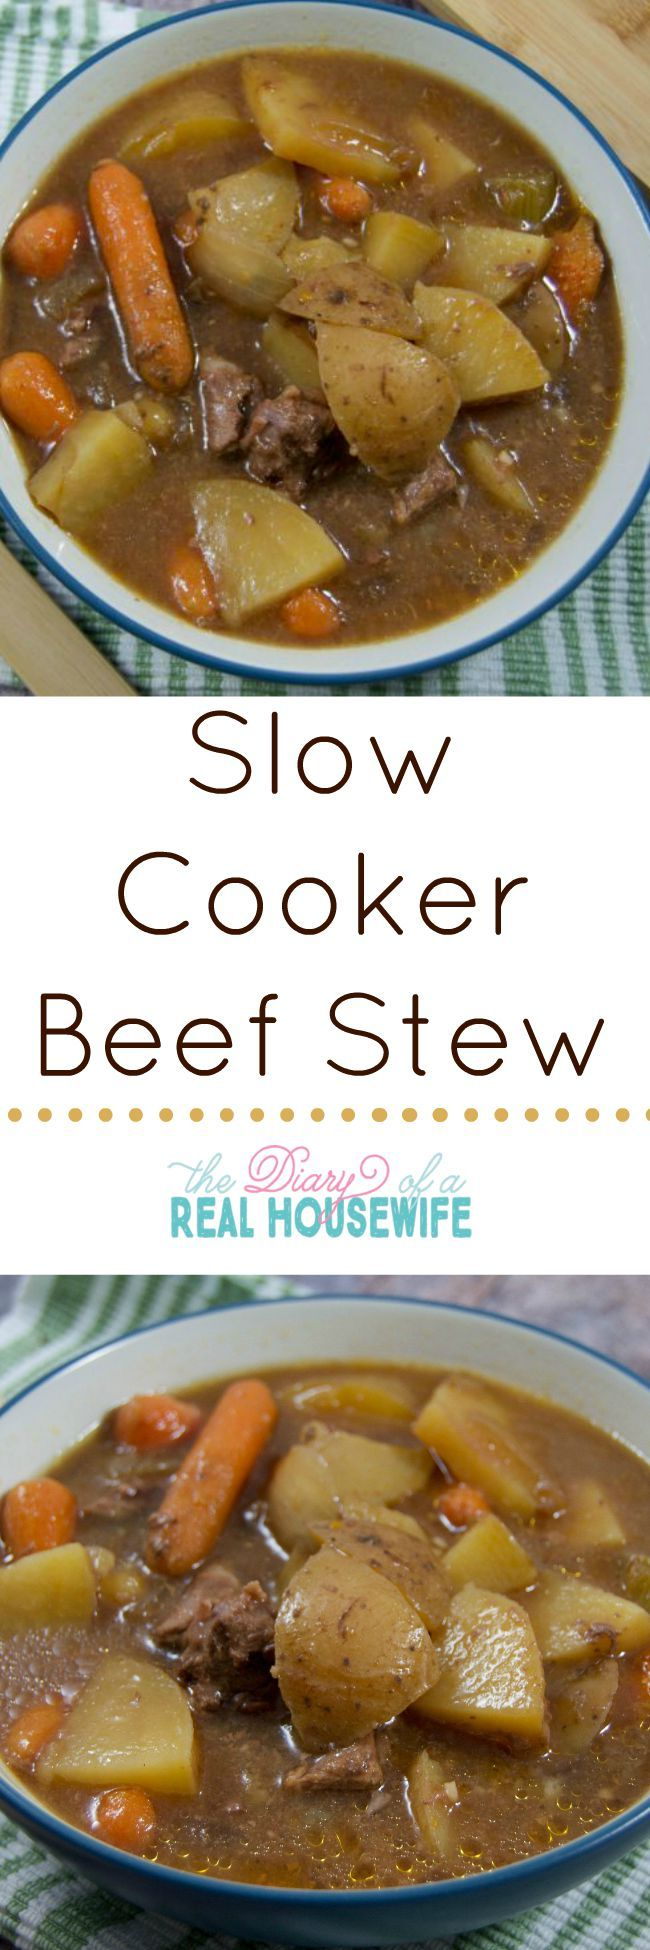 Yummy and really easy slow cooker beef stew! I'll be eating this all ...